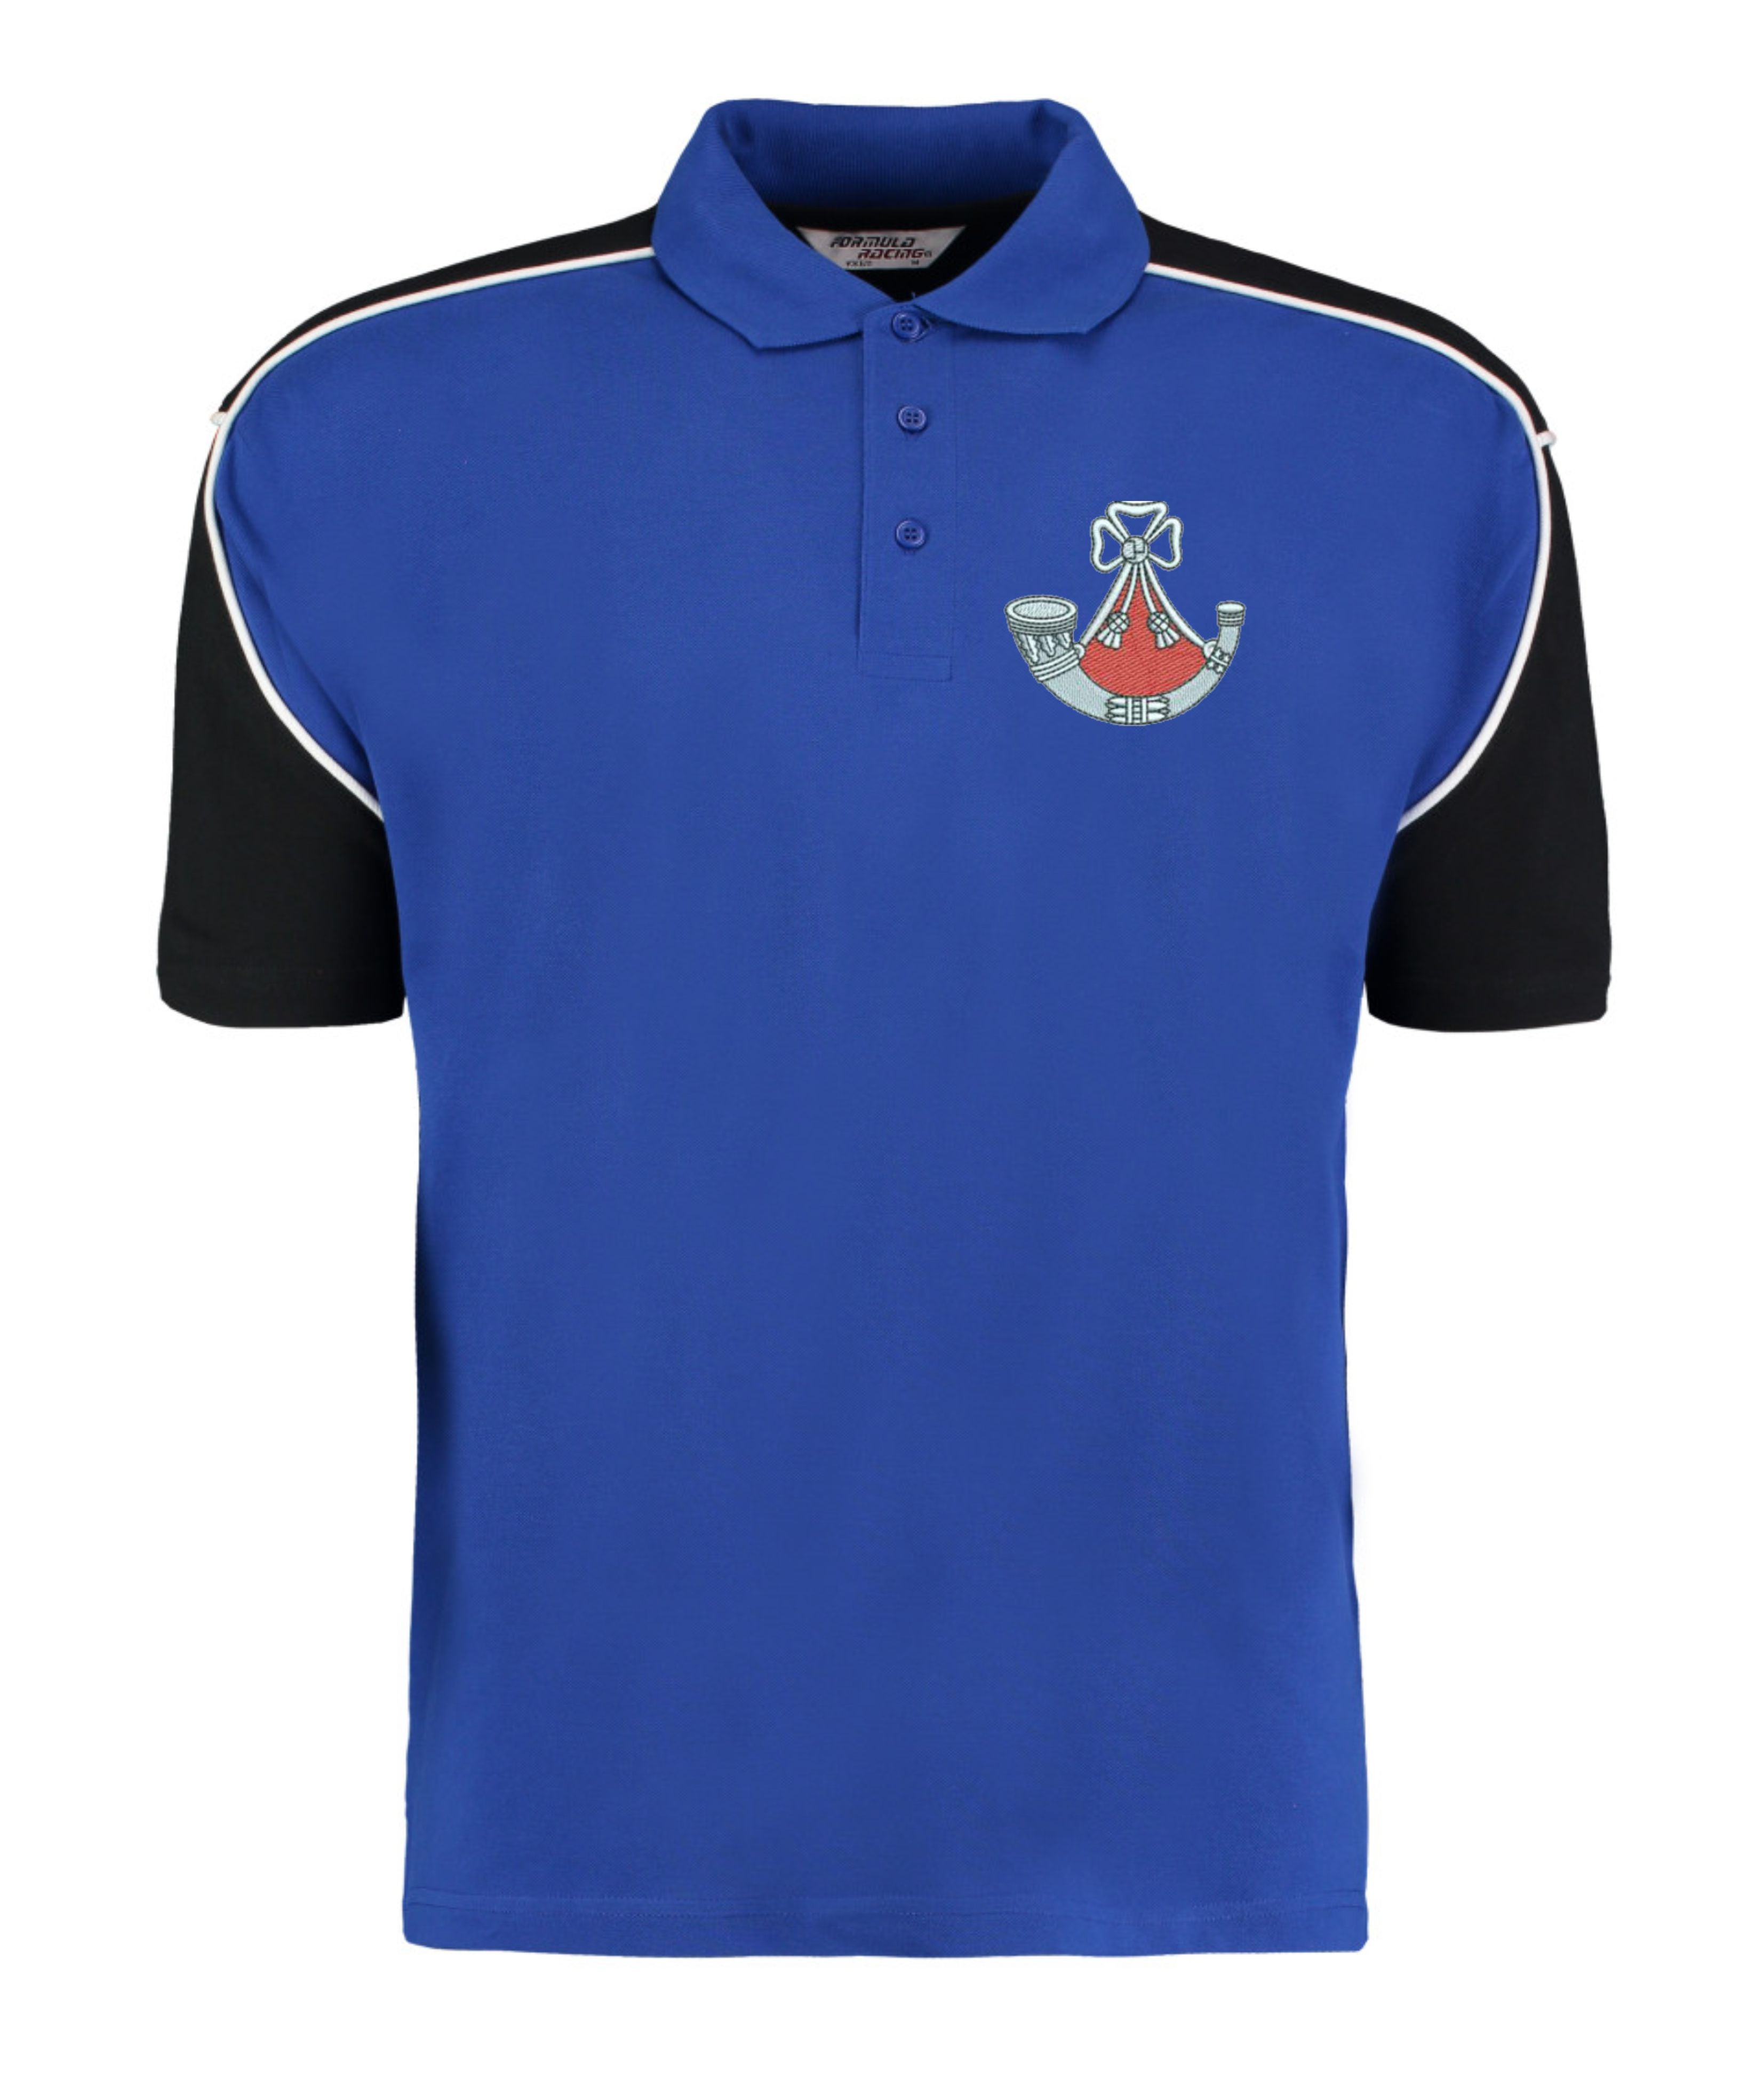 Light Infantry regiment sports polo shirt